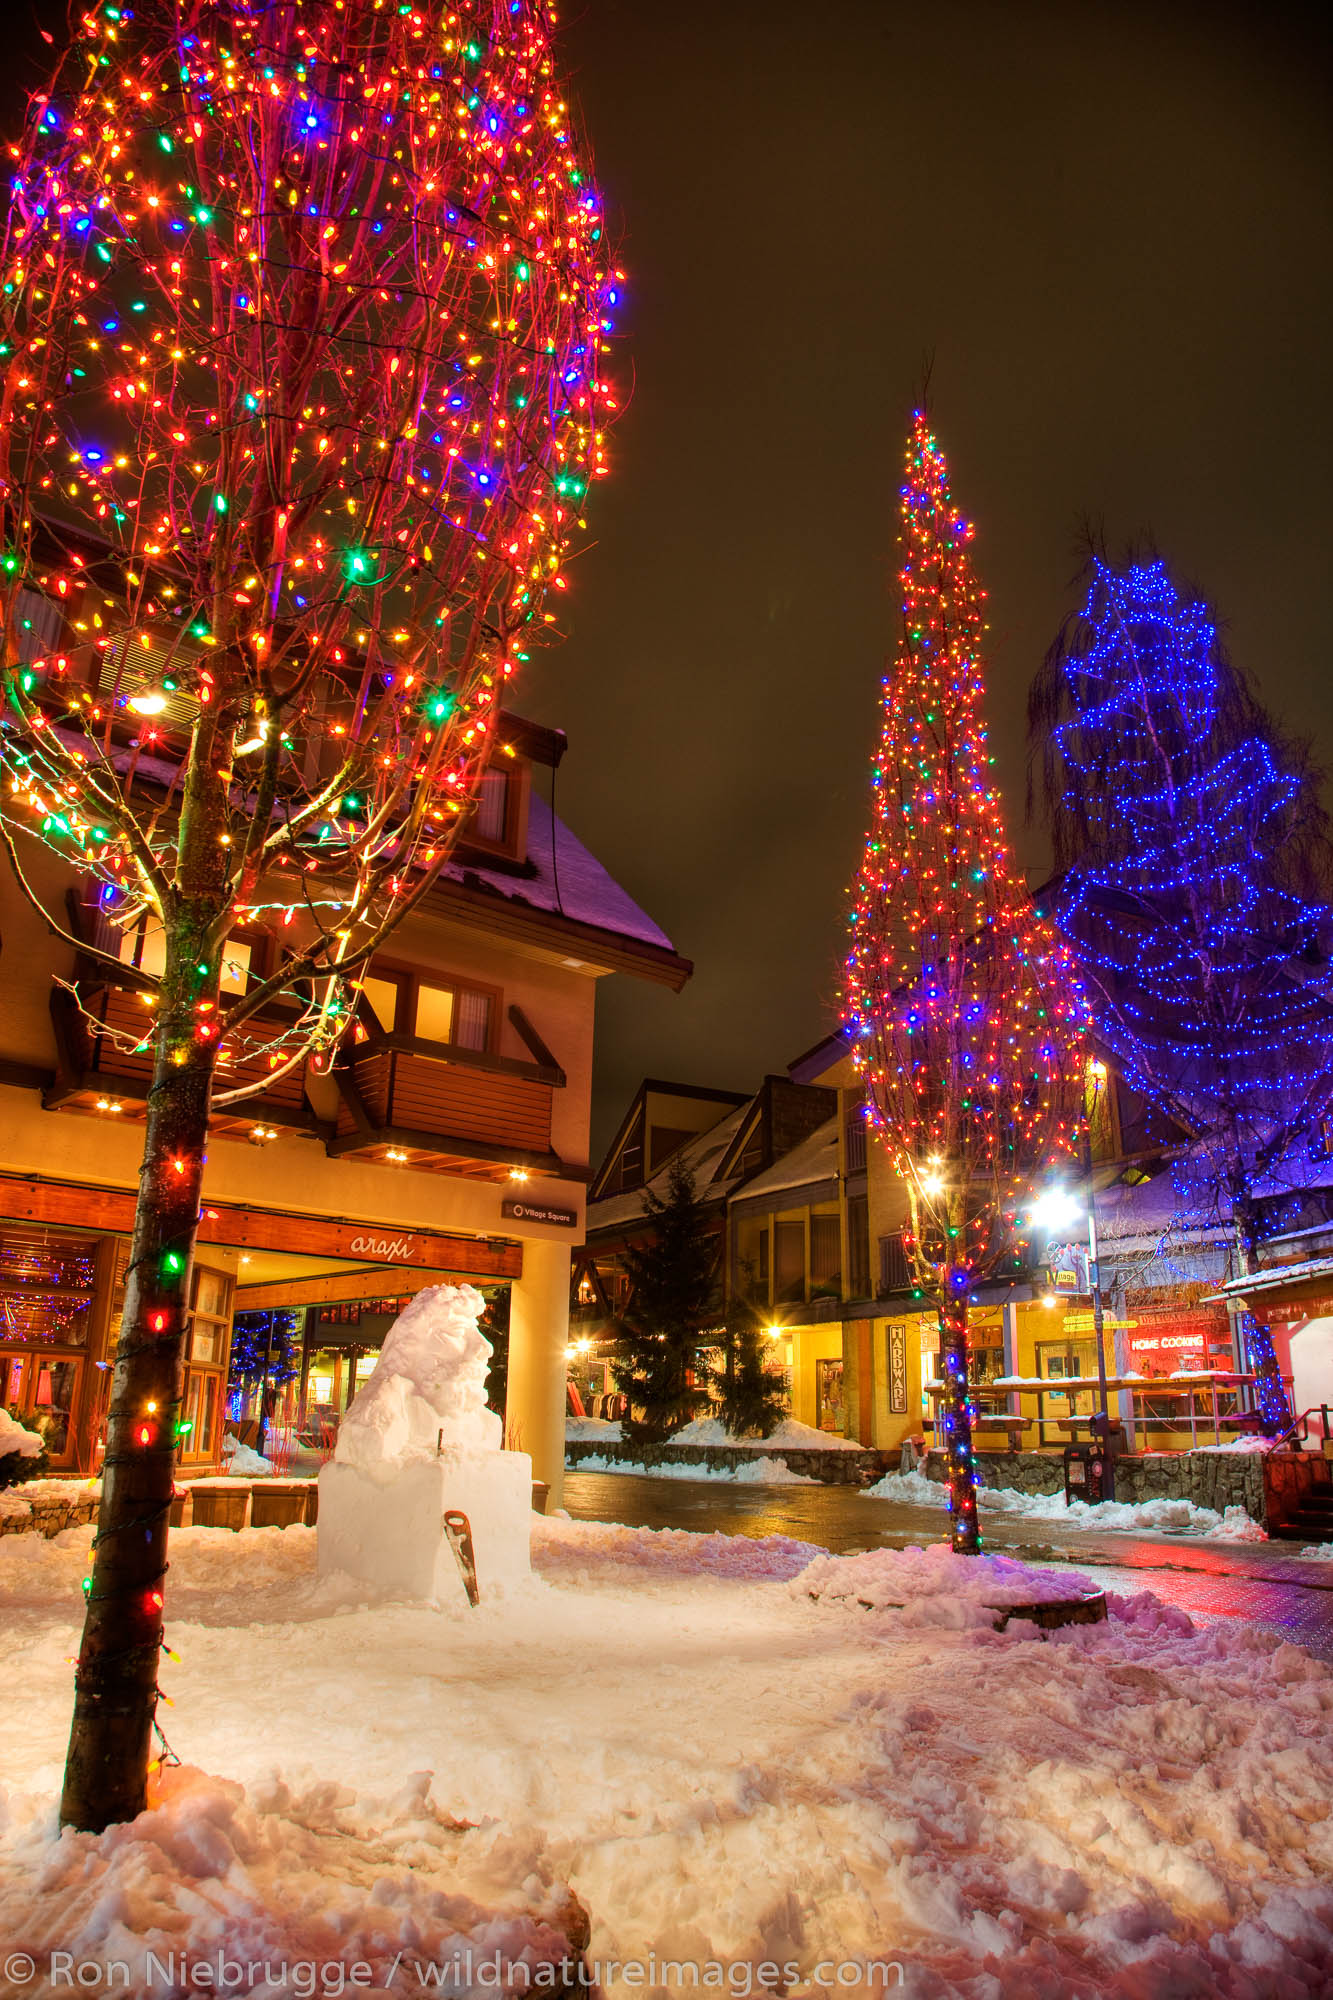 The town of Whistler, one of the host venues for the 2010 Vancouver Winter Olympics, British Columbia, Canada.